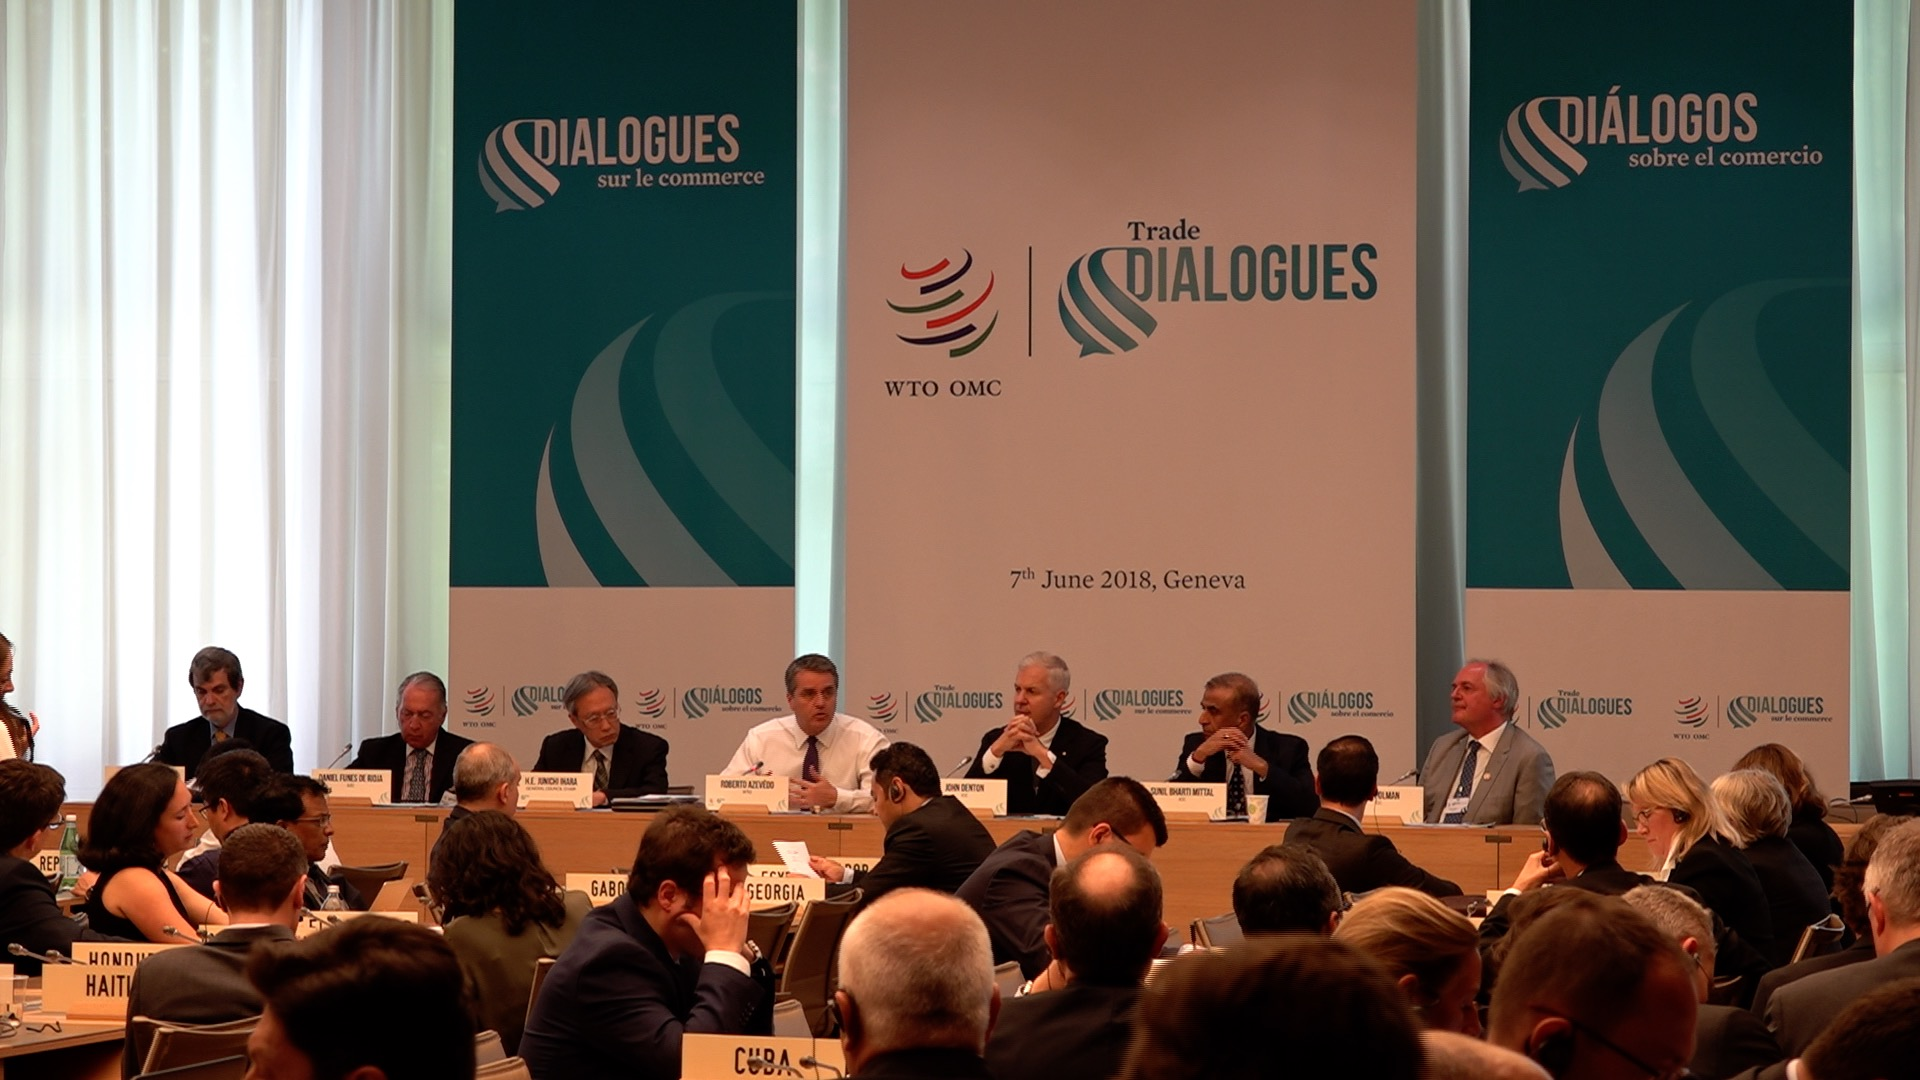 Trade Dialogues with businesses